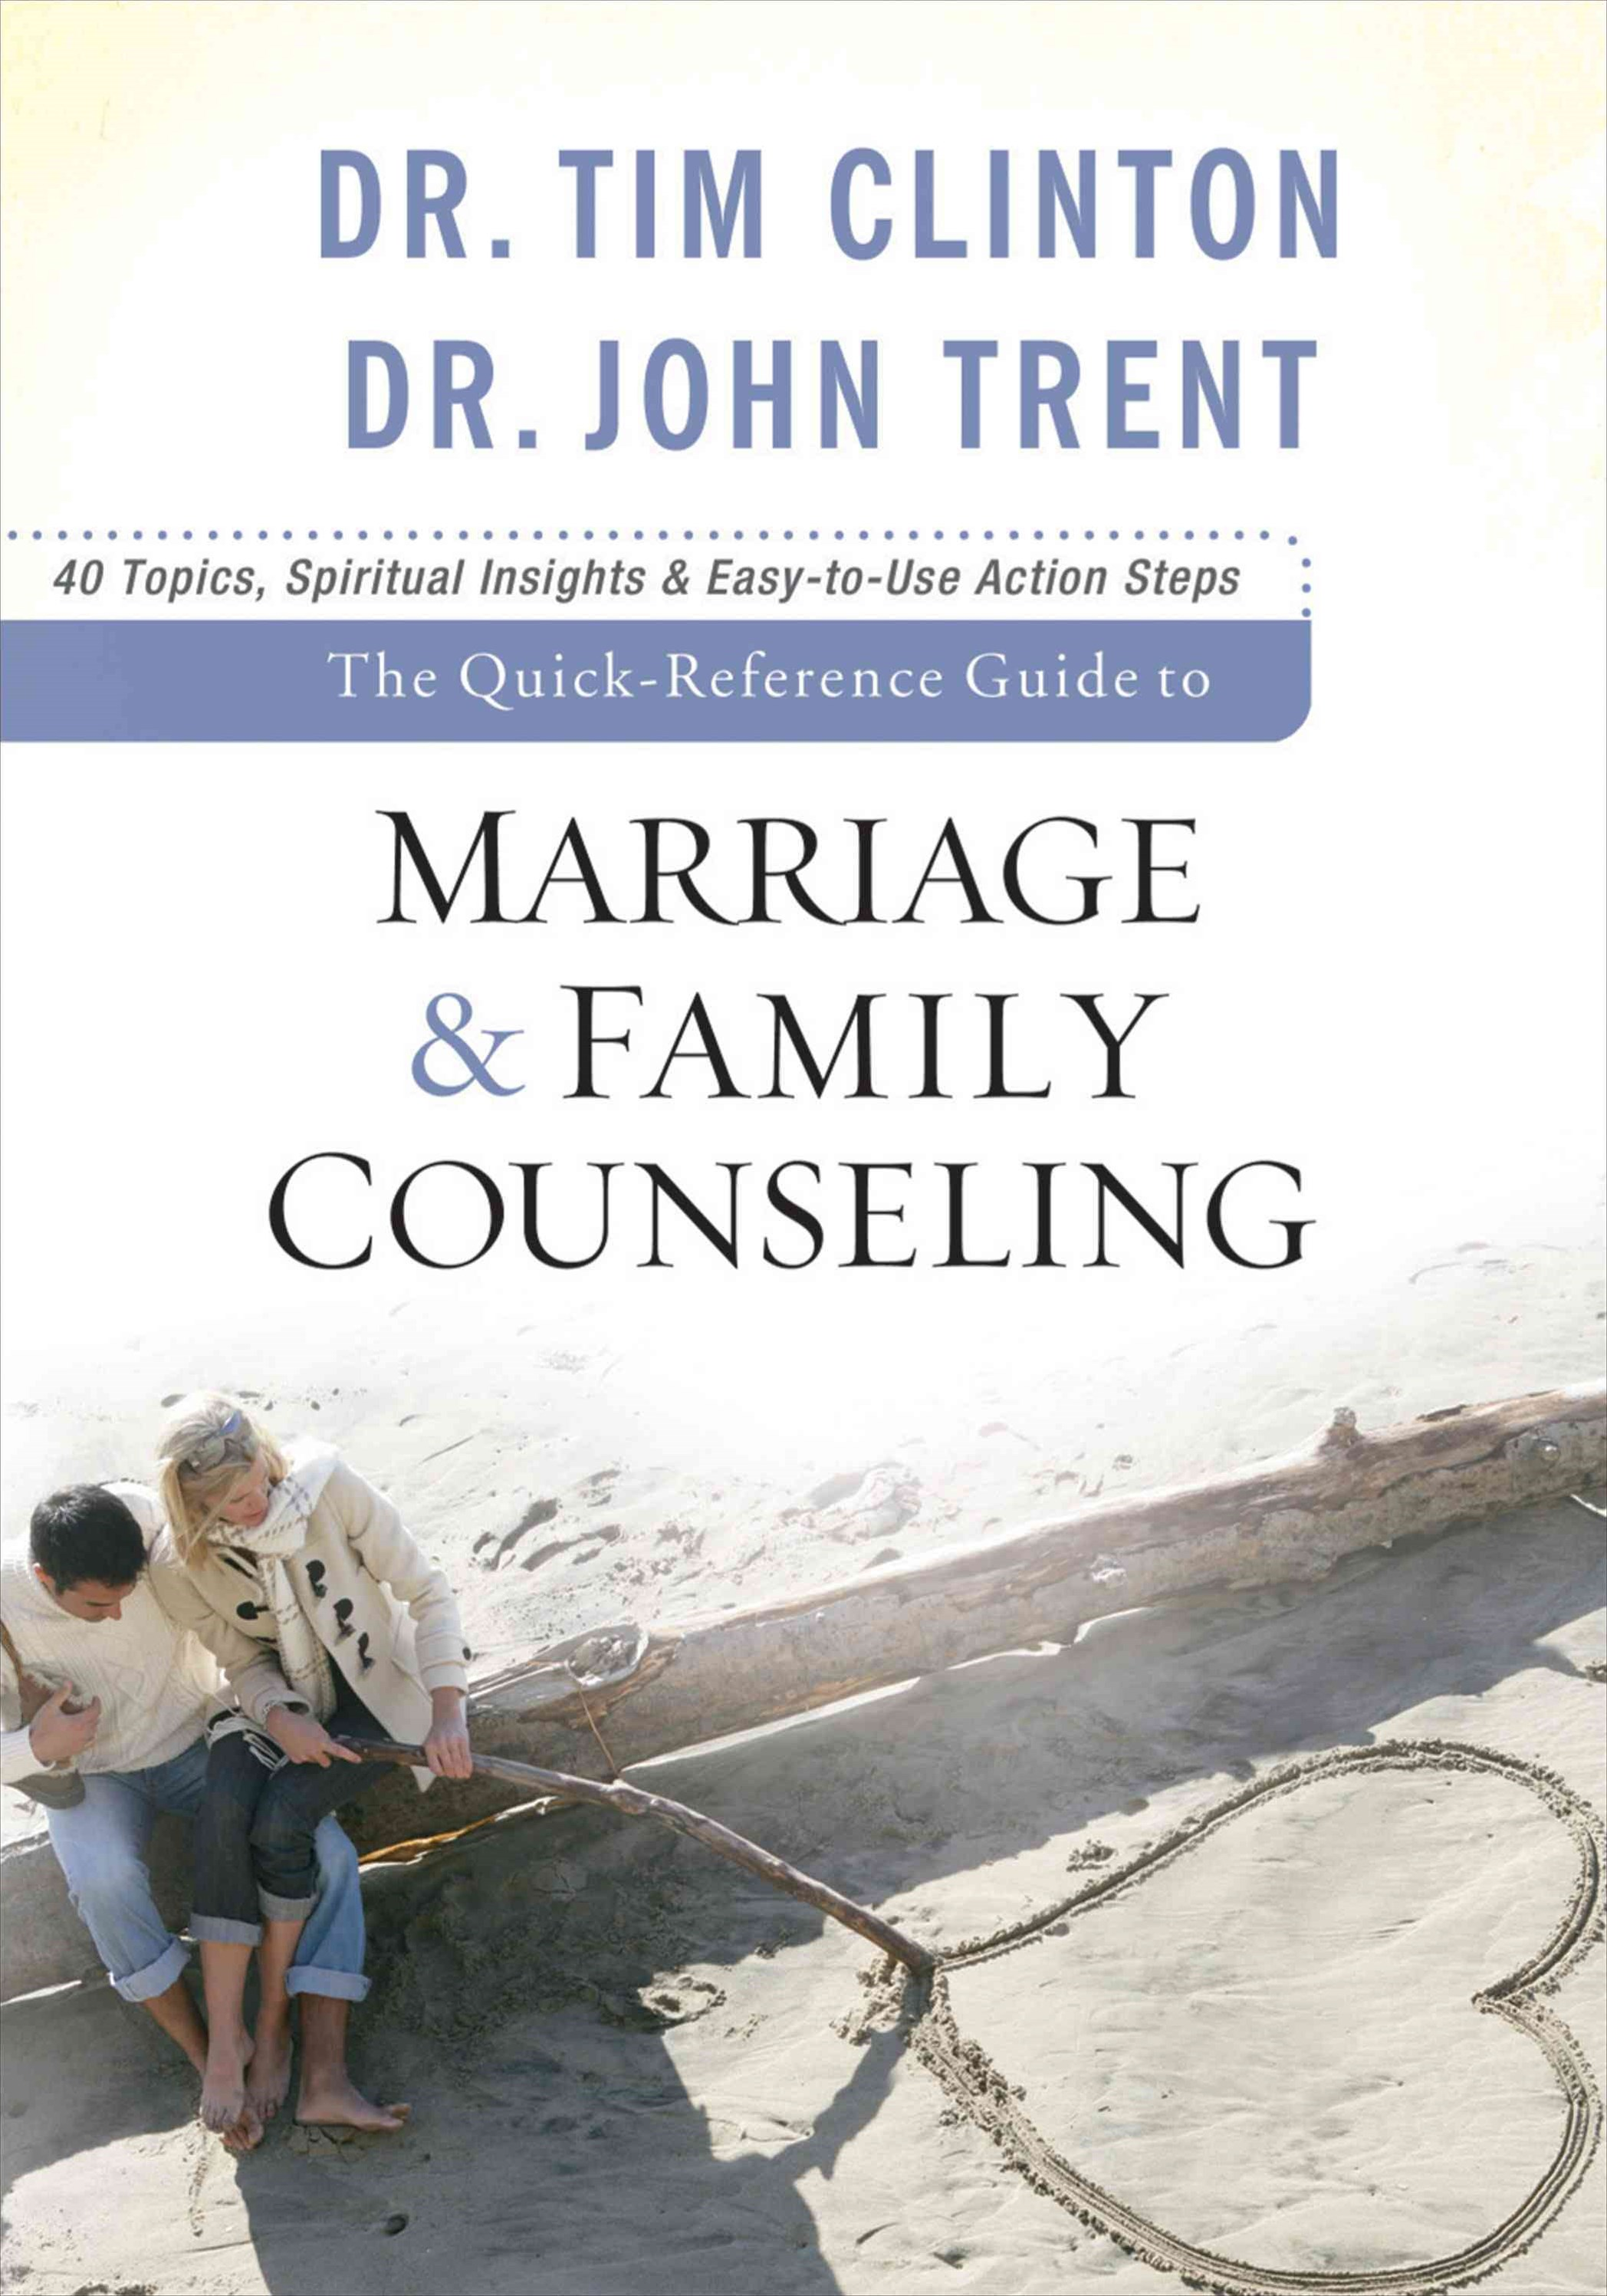 The Quick-Reference Guide to Marriage and Family Counseling